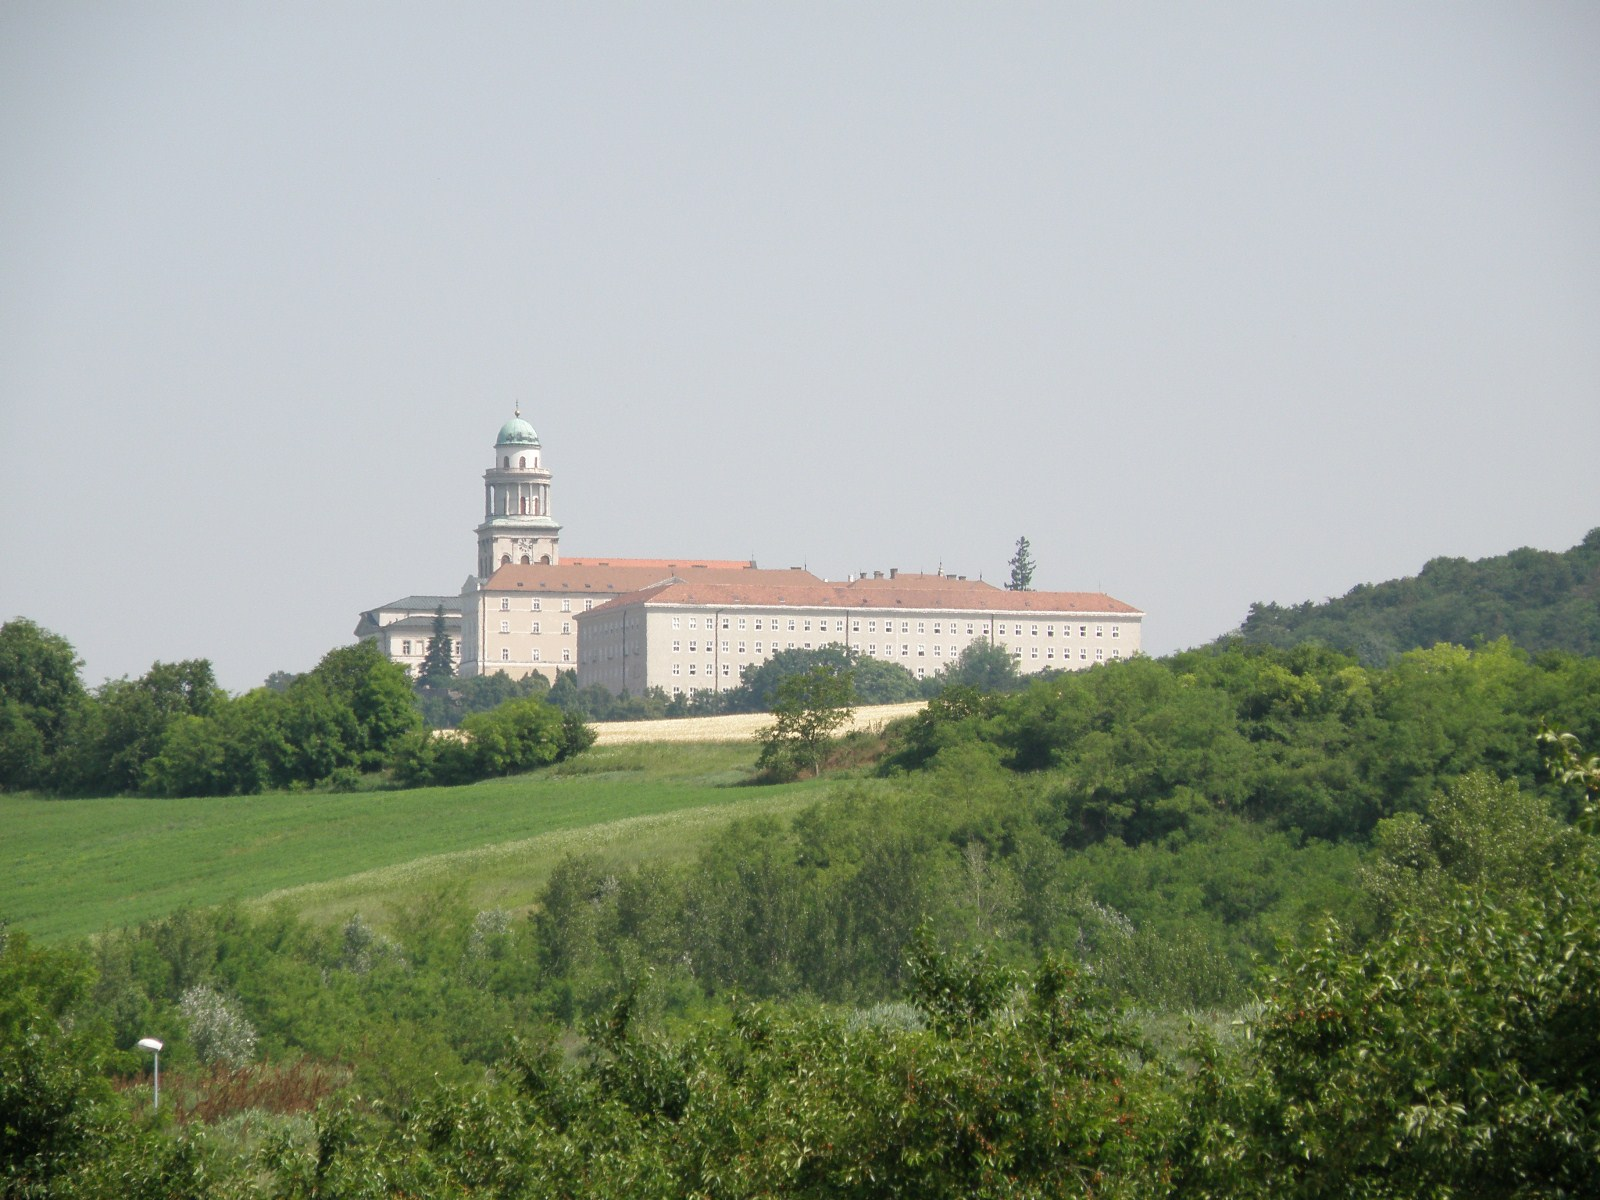 Pannonhalma Archabbey, Hungary, Europe, Panorama close view